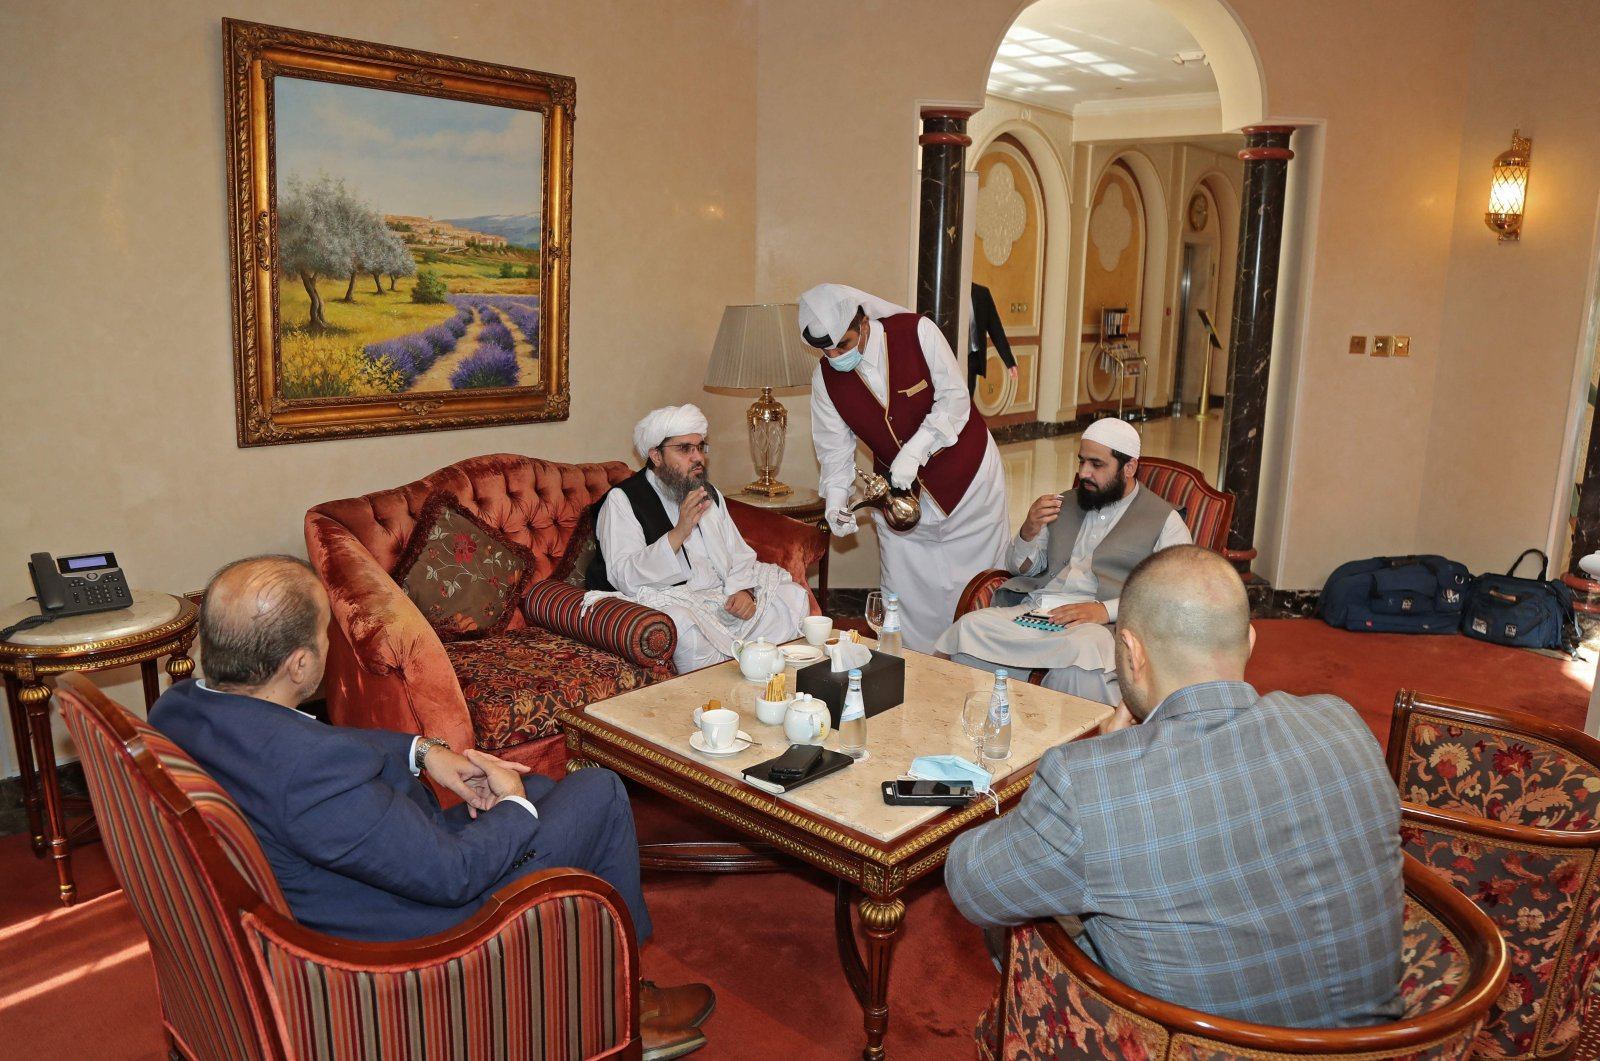 Taliban's former envoy to Saudi Arabia Shahabuddin Delawar (C) sips coffee before a meeting with foreign diplomats in Qatar's capital Doha, Oct. 12, 2021. (AFP Photo)